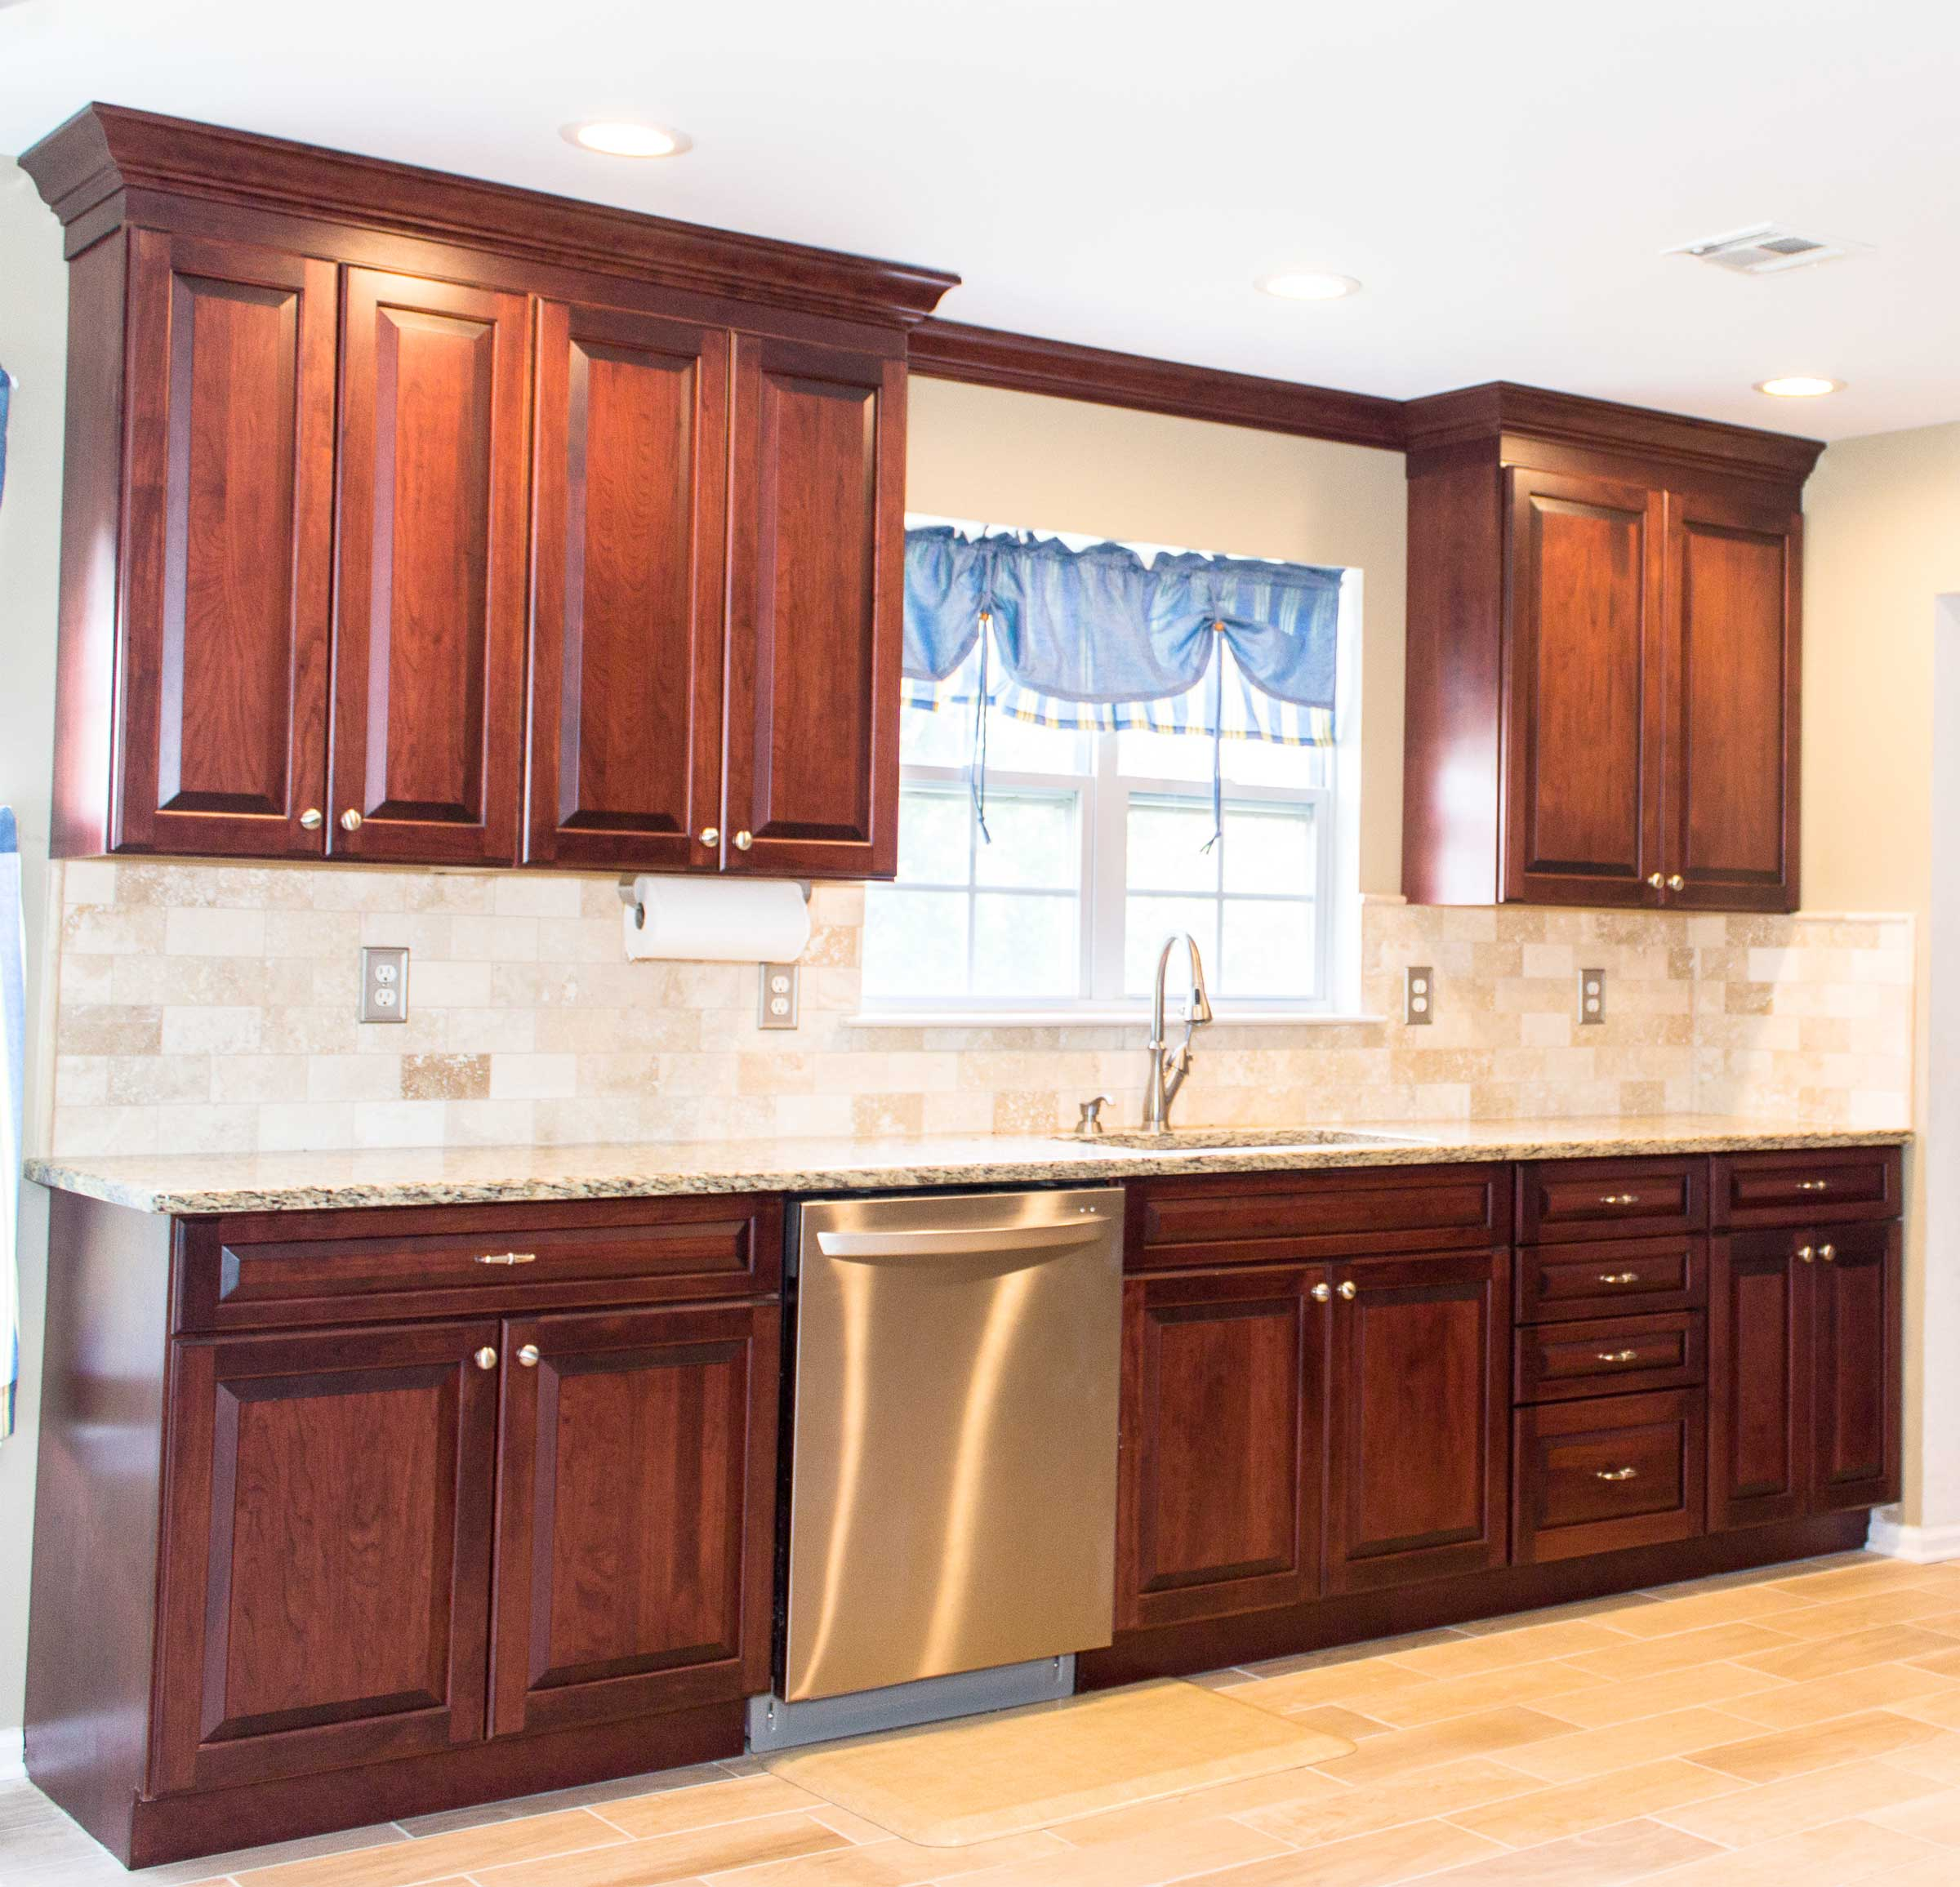 The Basic Kitchen Co._Kitchen Renovation_Old Bridge NJ_May 2015